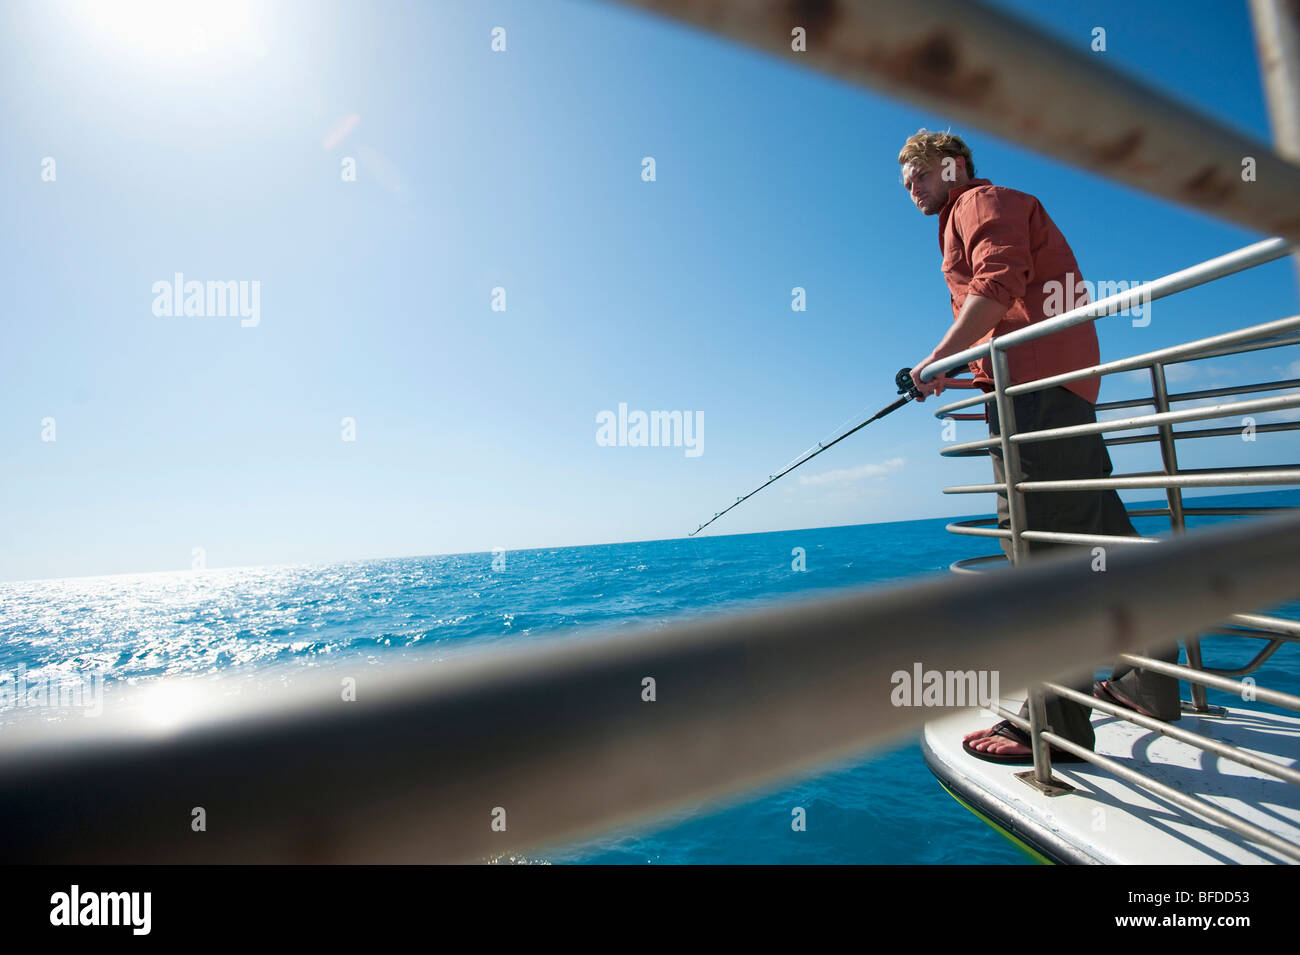 A man fishes off of a boat in Florida. - Stock Image